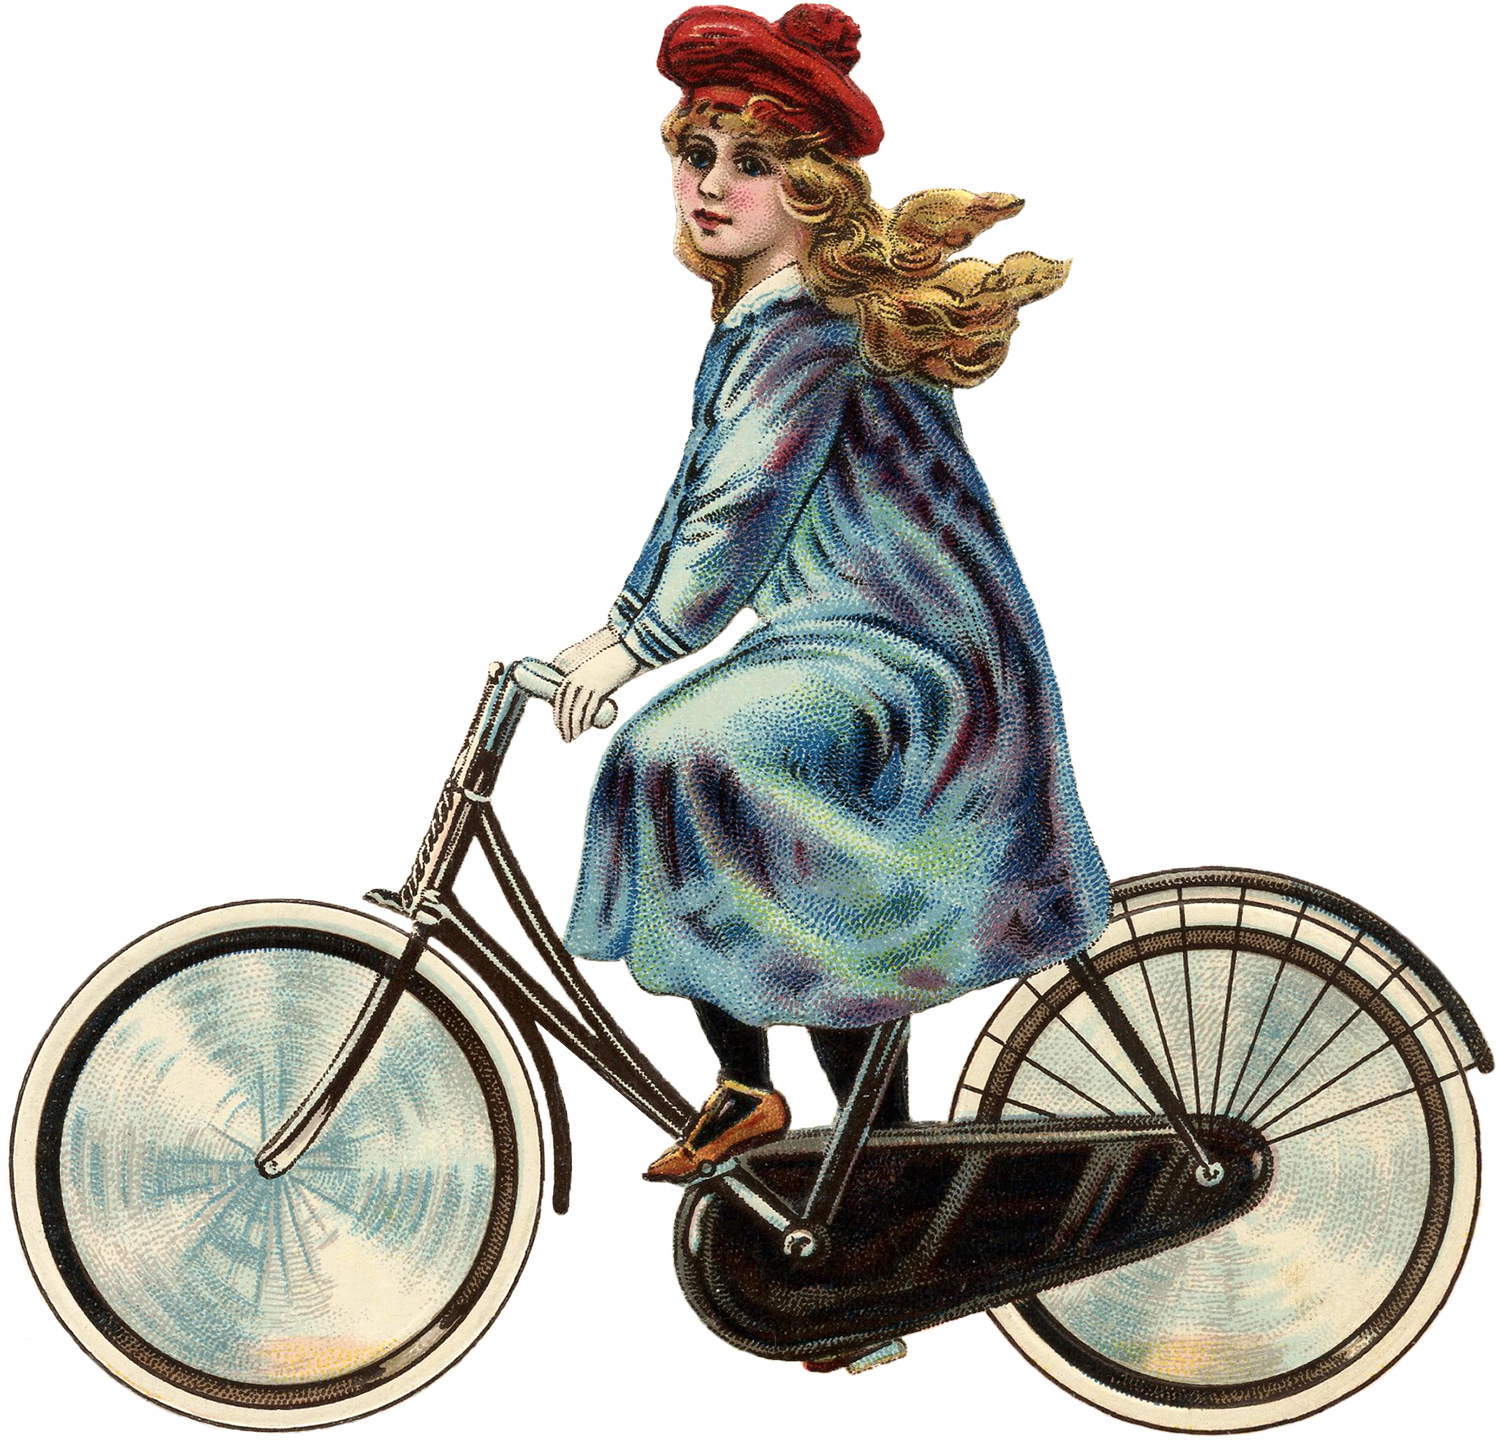 Antique Bicycle Girl Image